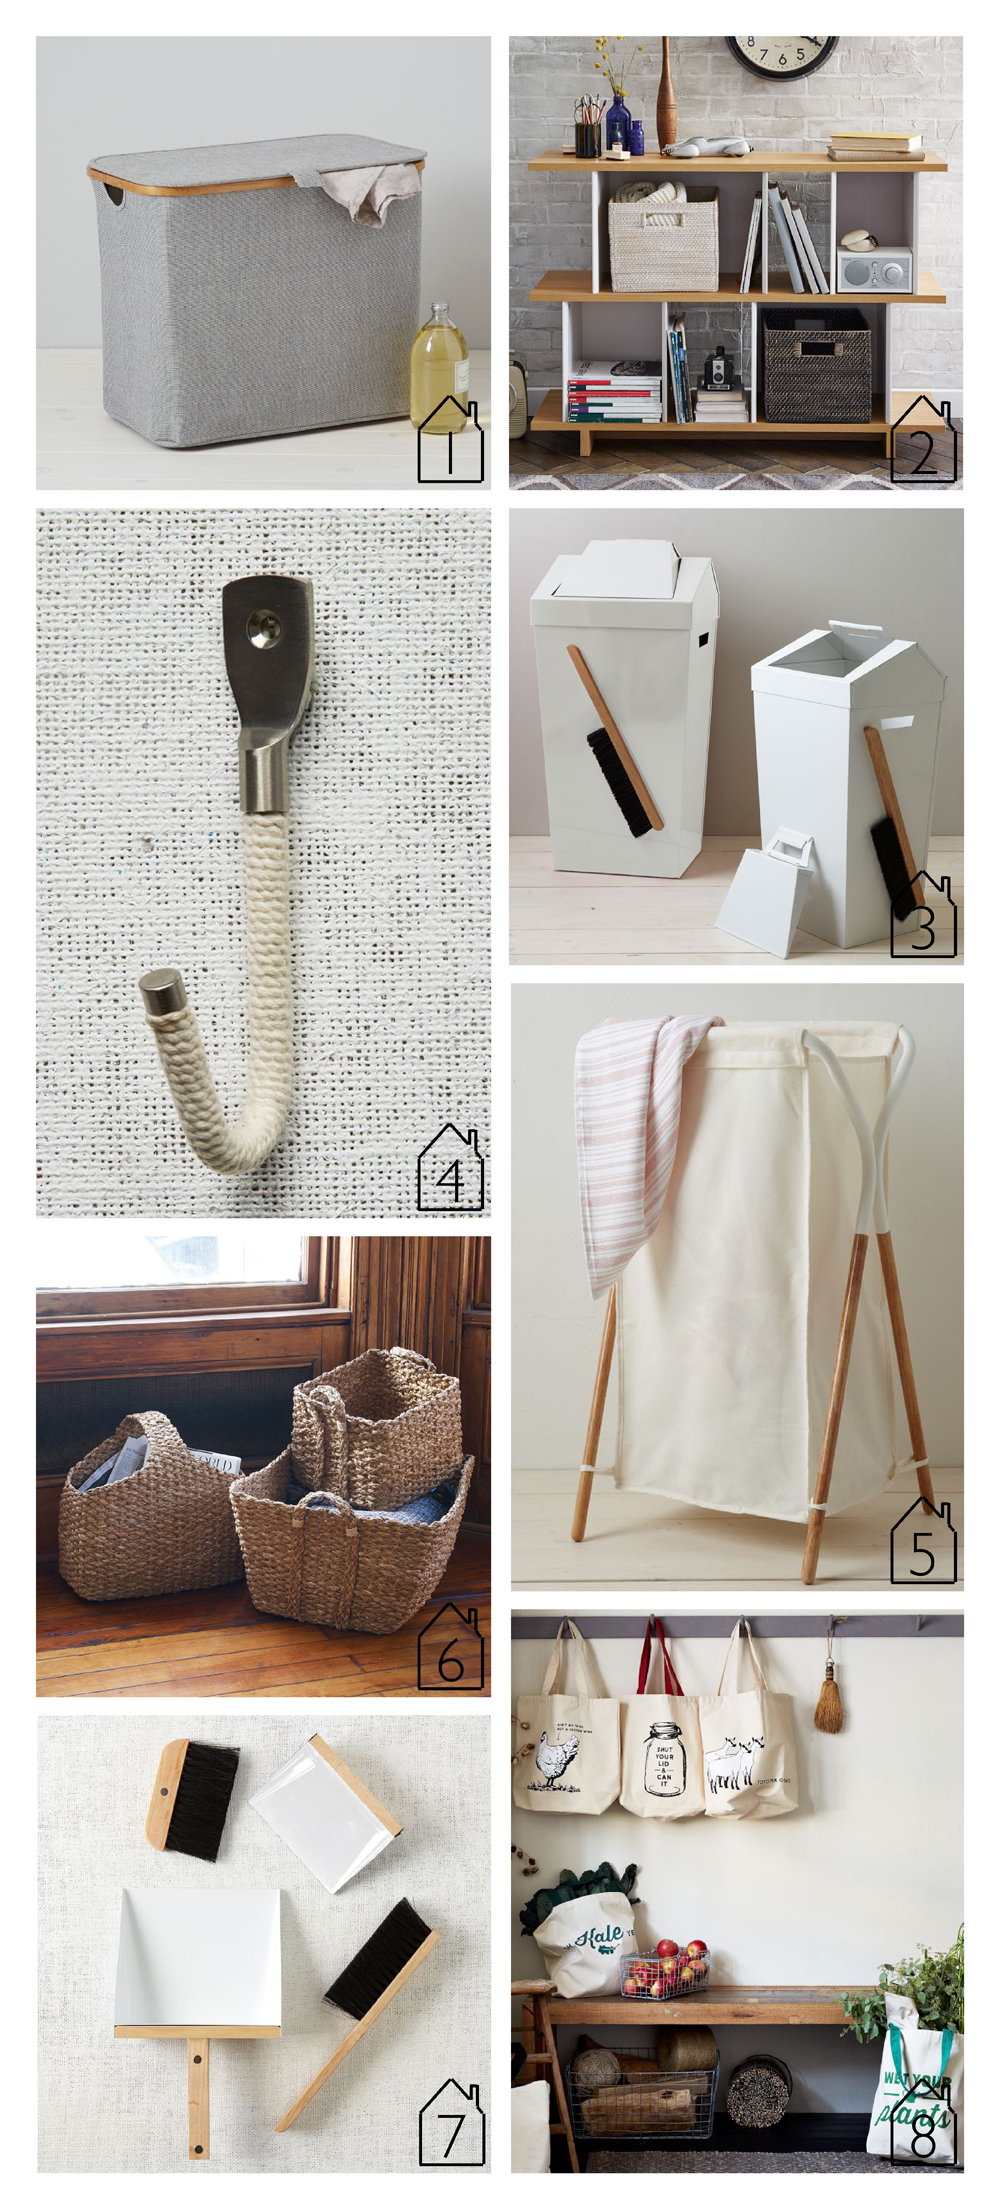 1.  Bamboo Rim Laundry Hamper   2.  Boxes + Planes Bookshelf   3.  Brendan Ravenhill Dustbin   4.  Rope + Metal Hook   5.  Modern Two-Tone Hamper   6.  Braided Storage Bin   7.  Dustpan + Brush Set   8.  Totes